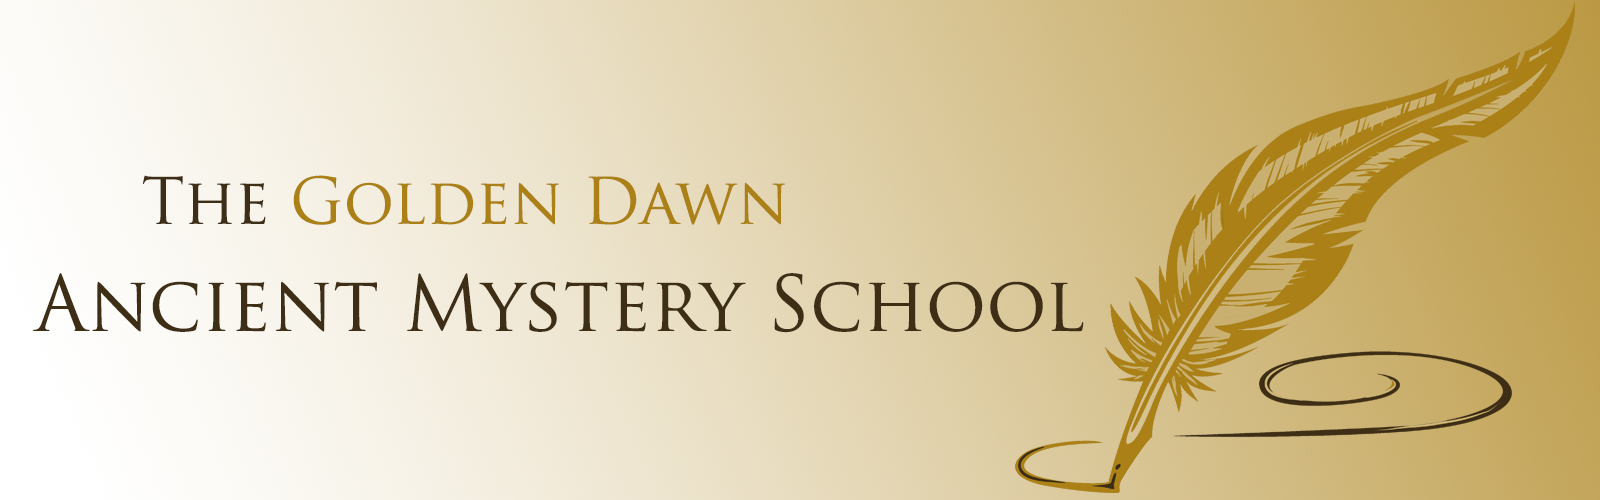 golden dawn ancient mystery school header